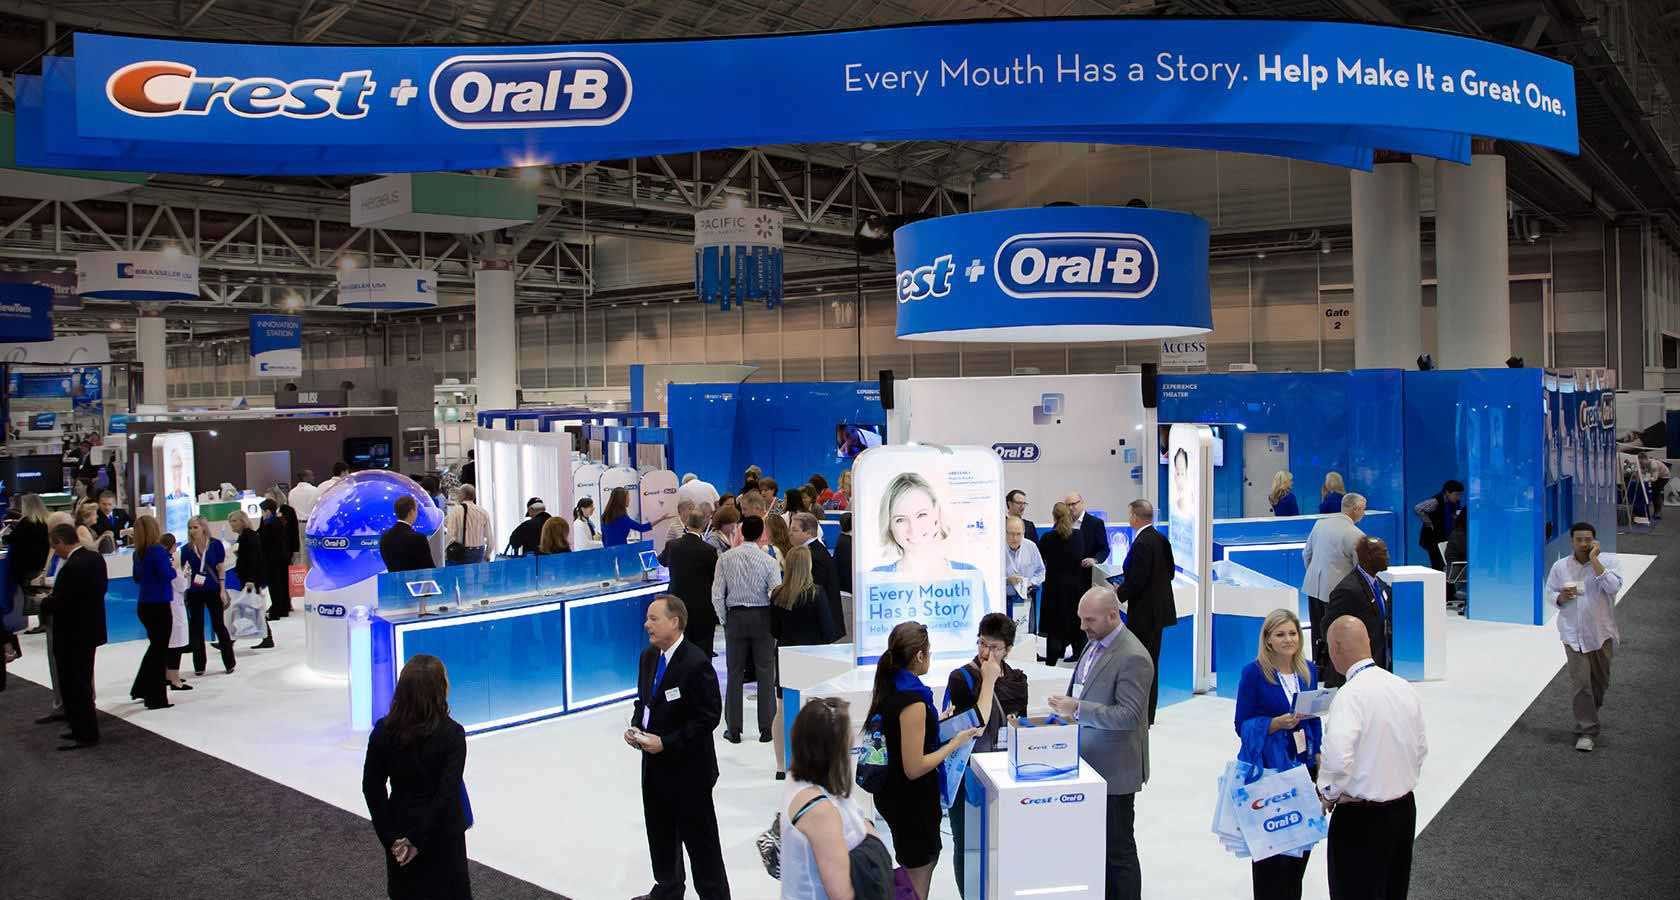 What Trade Show Booth Design Elements Can Attract Attention?